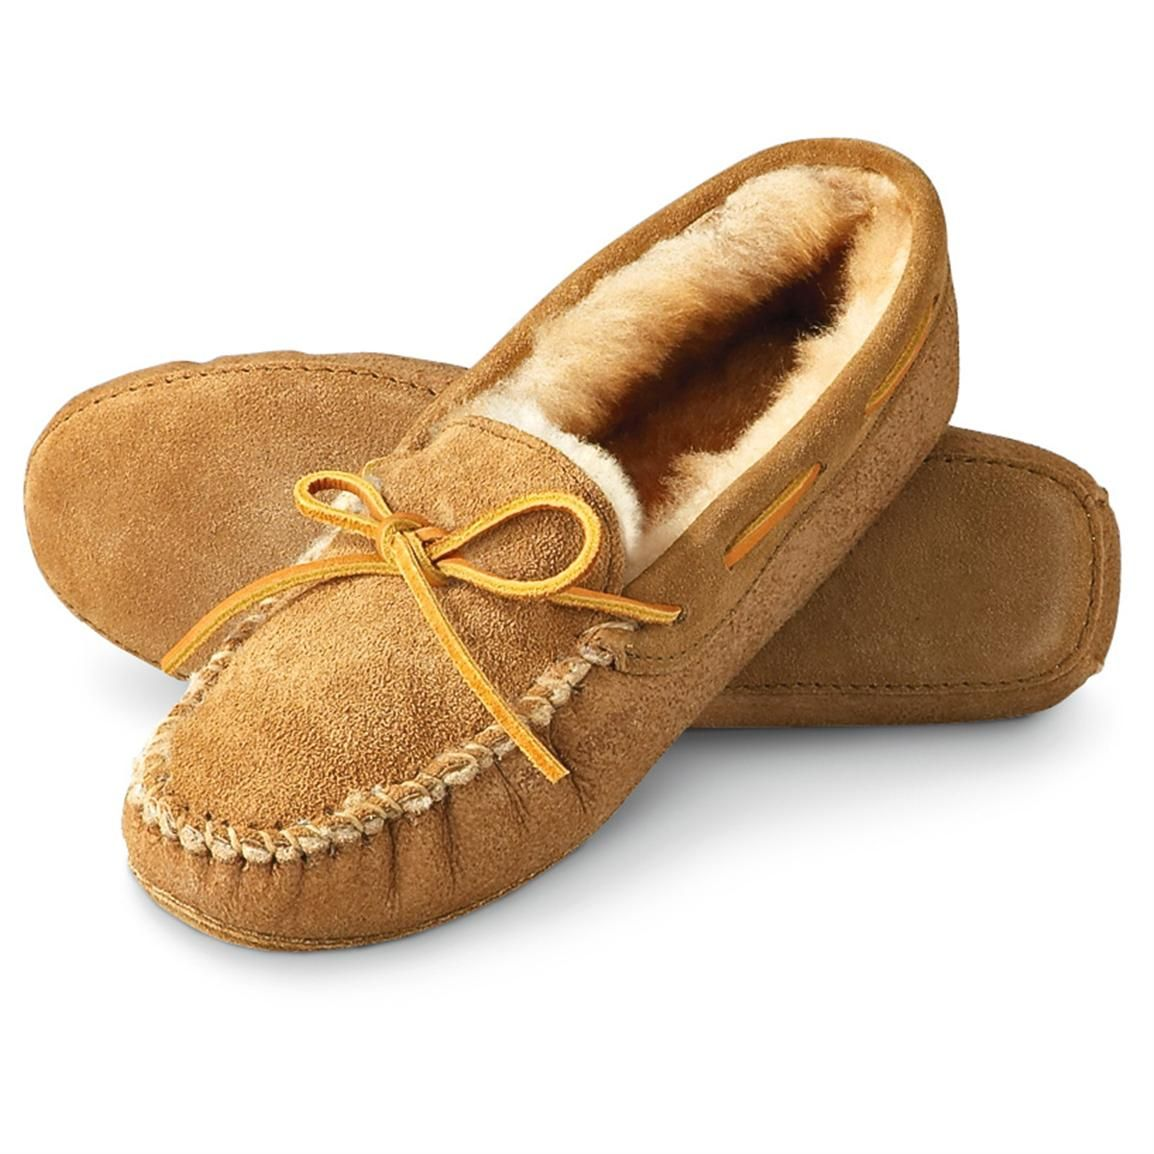 moccasins | Minnetonka slippers, Moccasins, Mens slippers